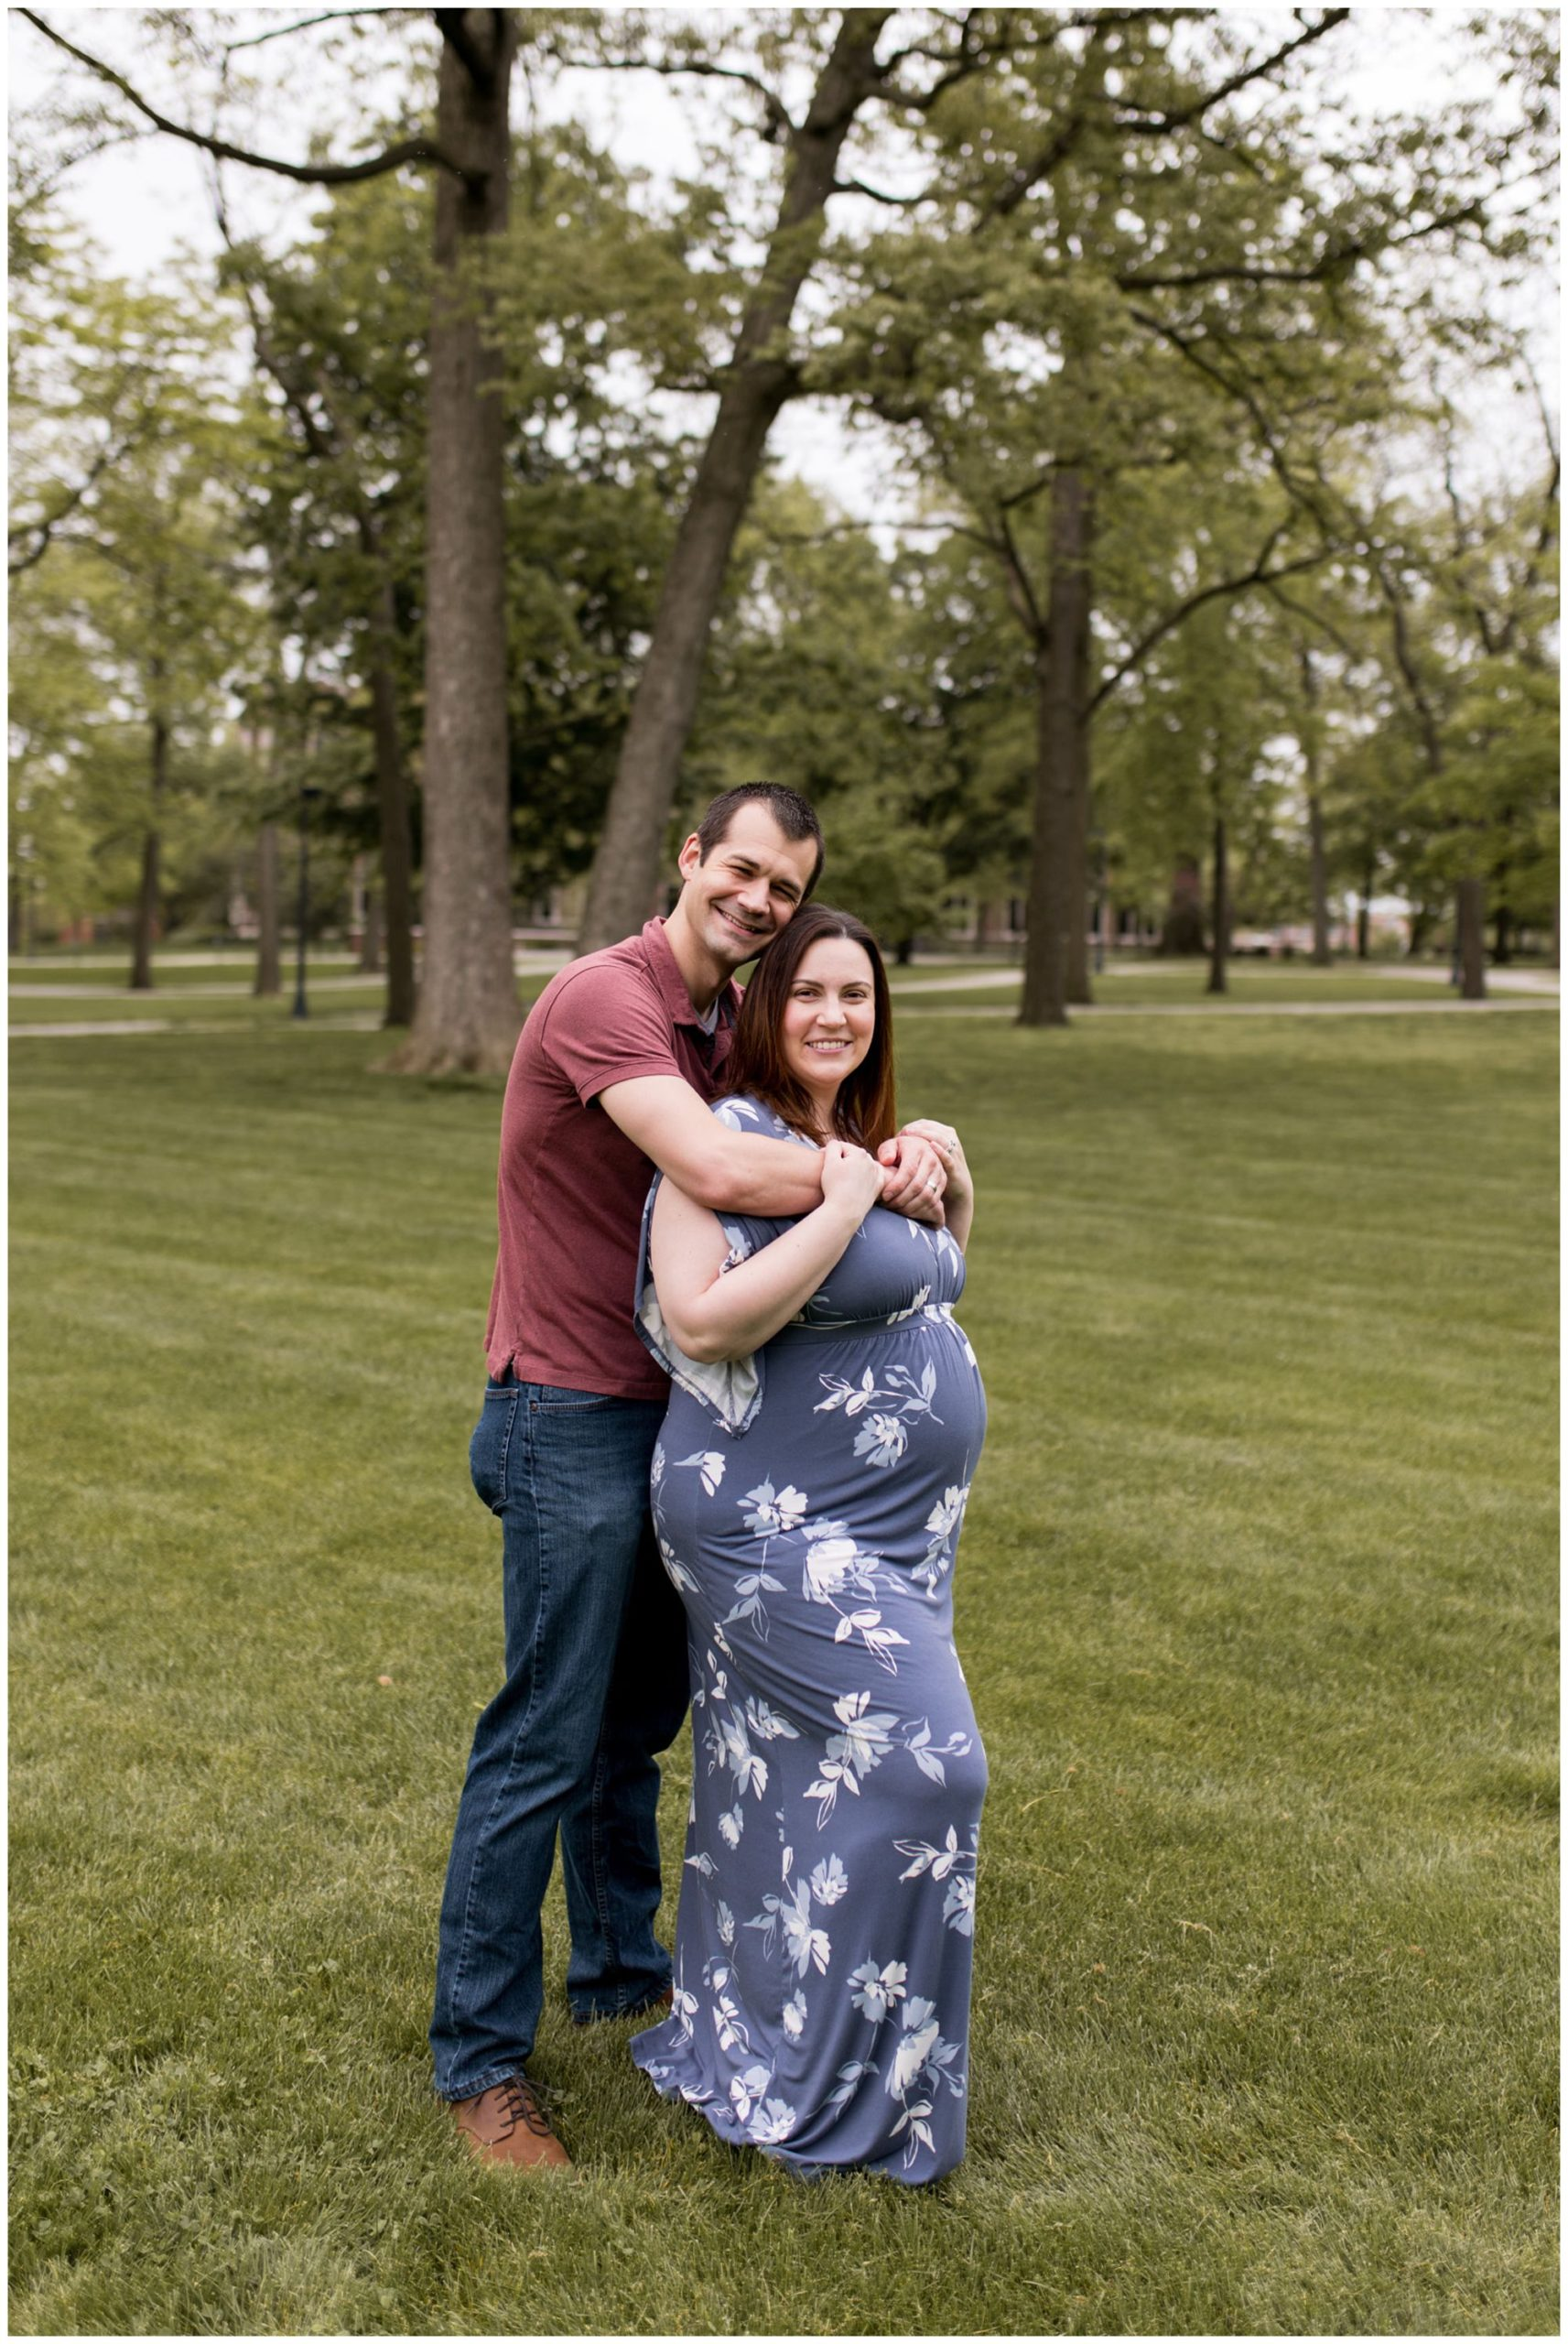 maternity session at Ball State University in Muncie, Indiana